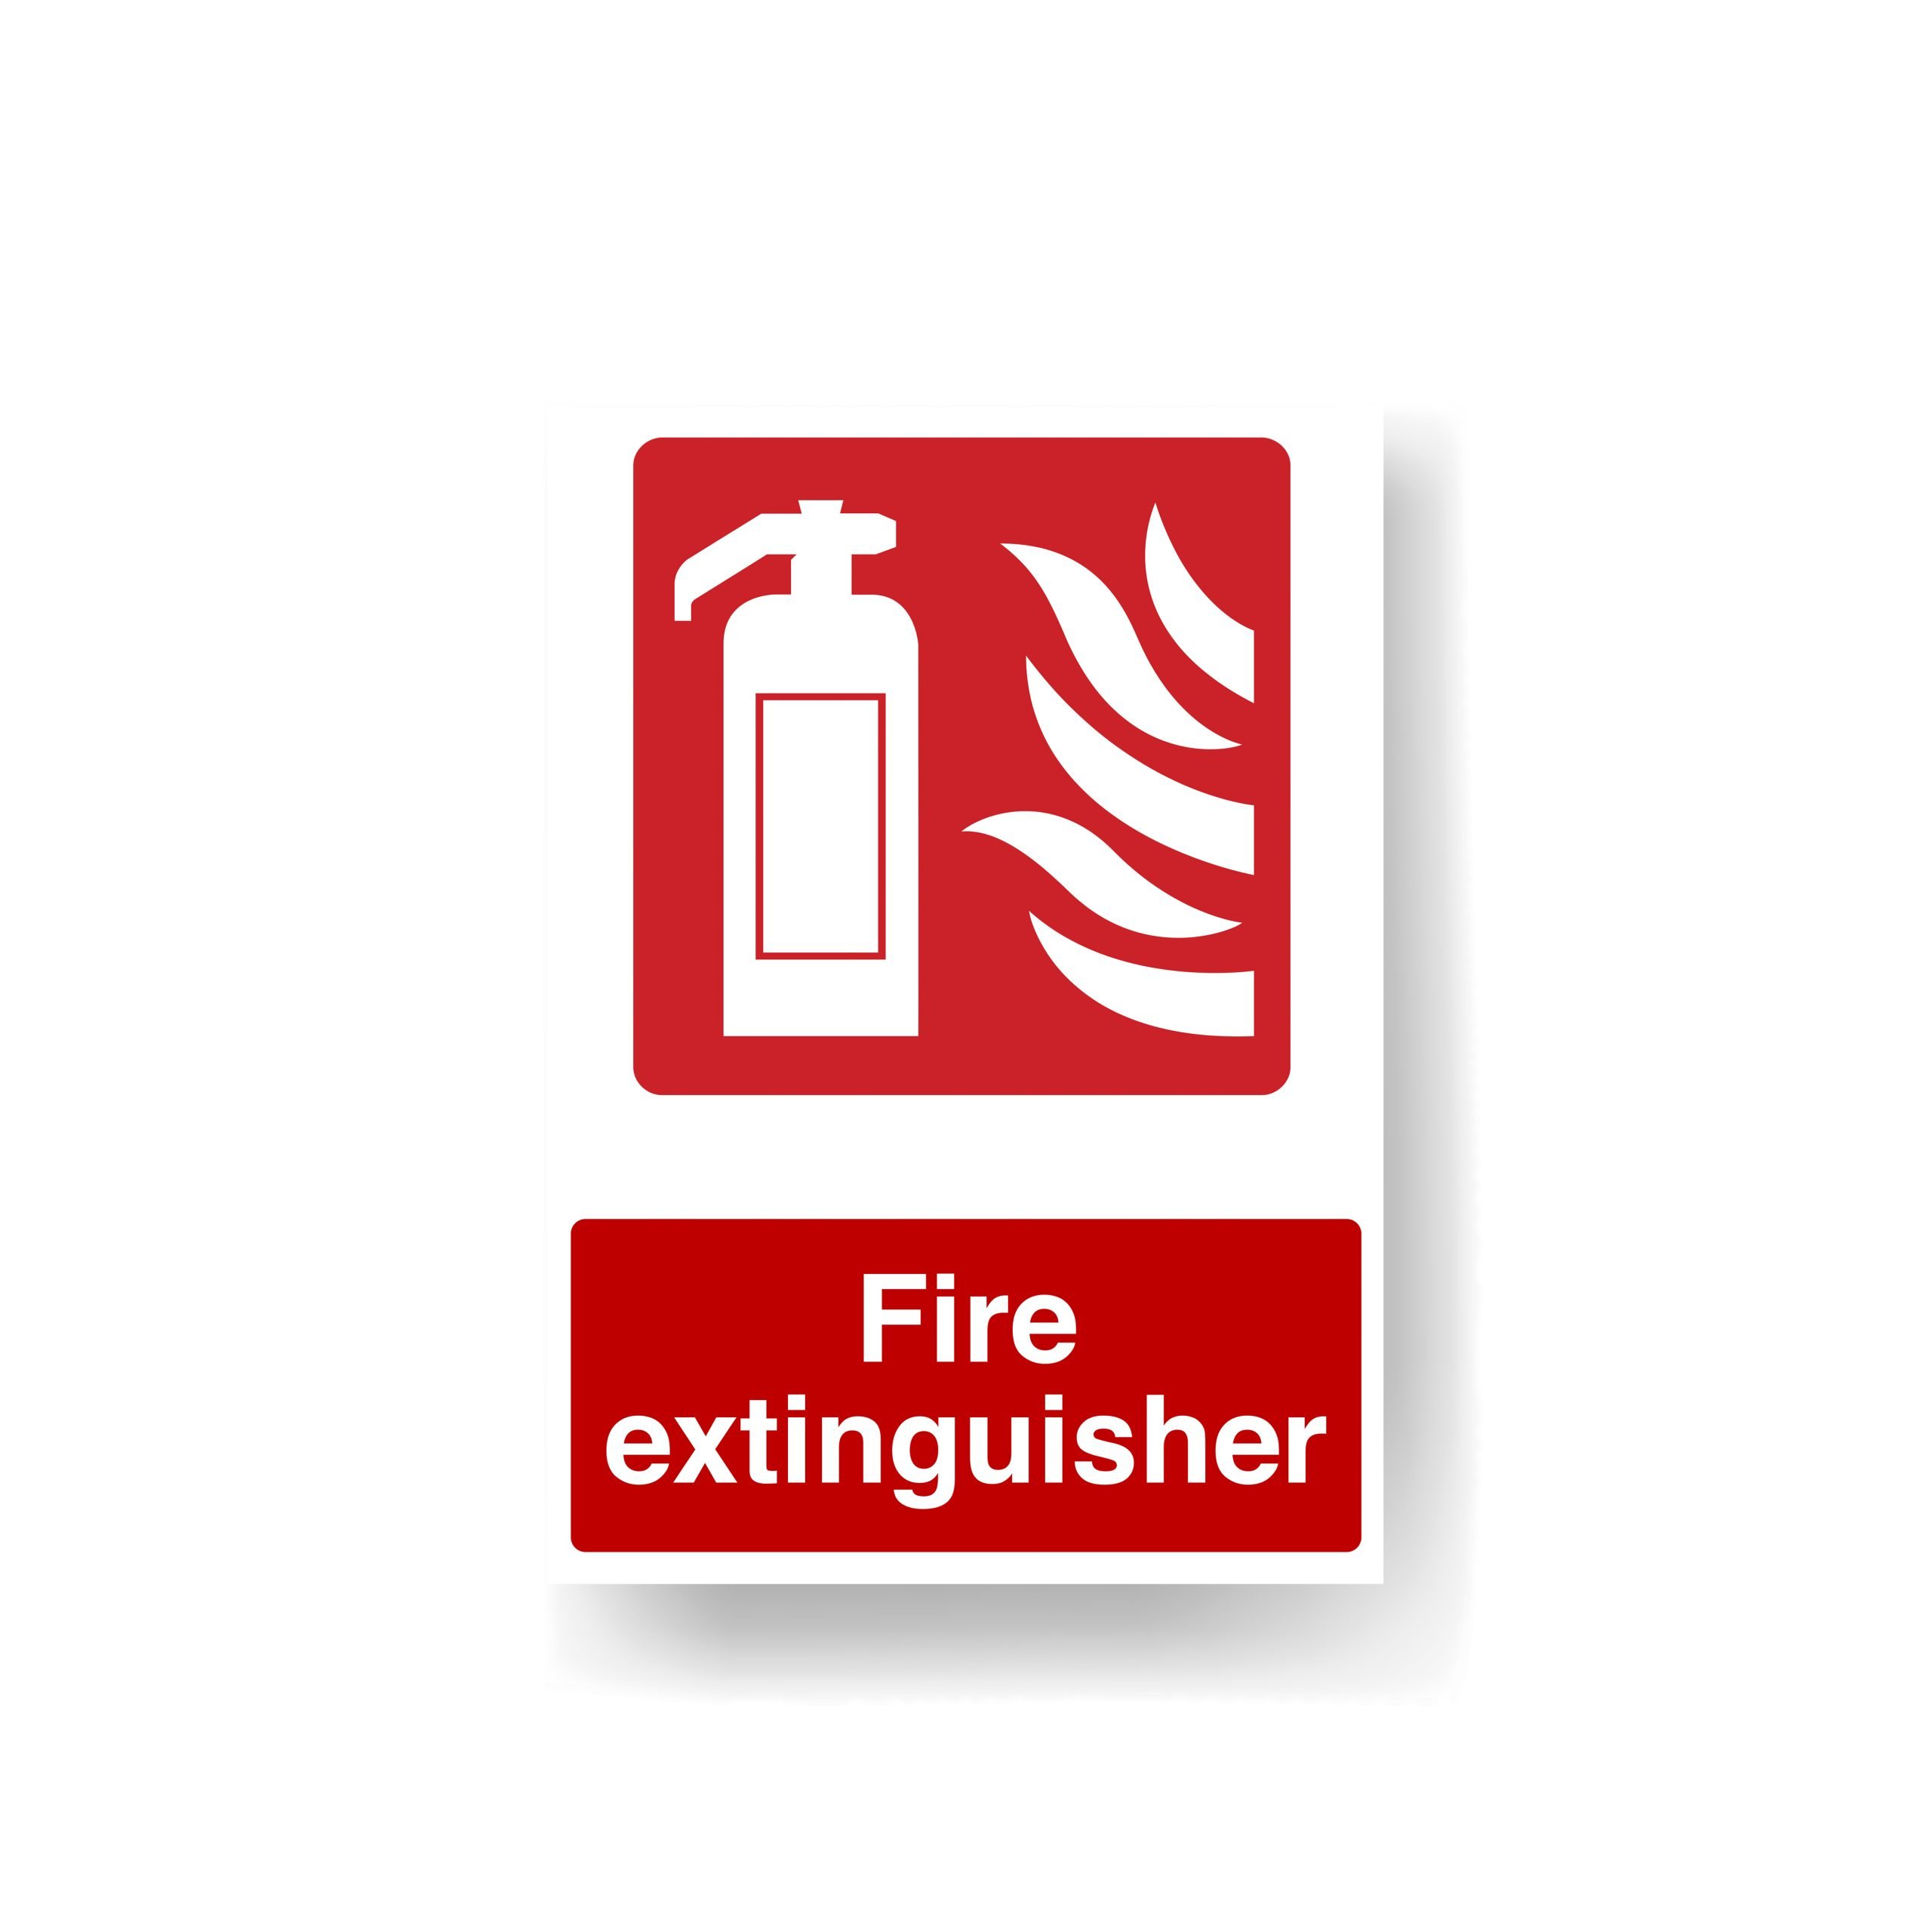 Fire extinguisher signage Norfolk Fakenham